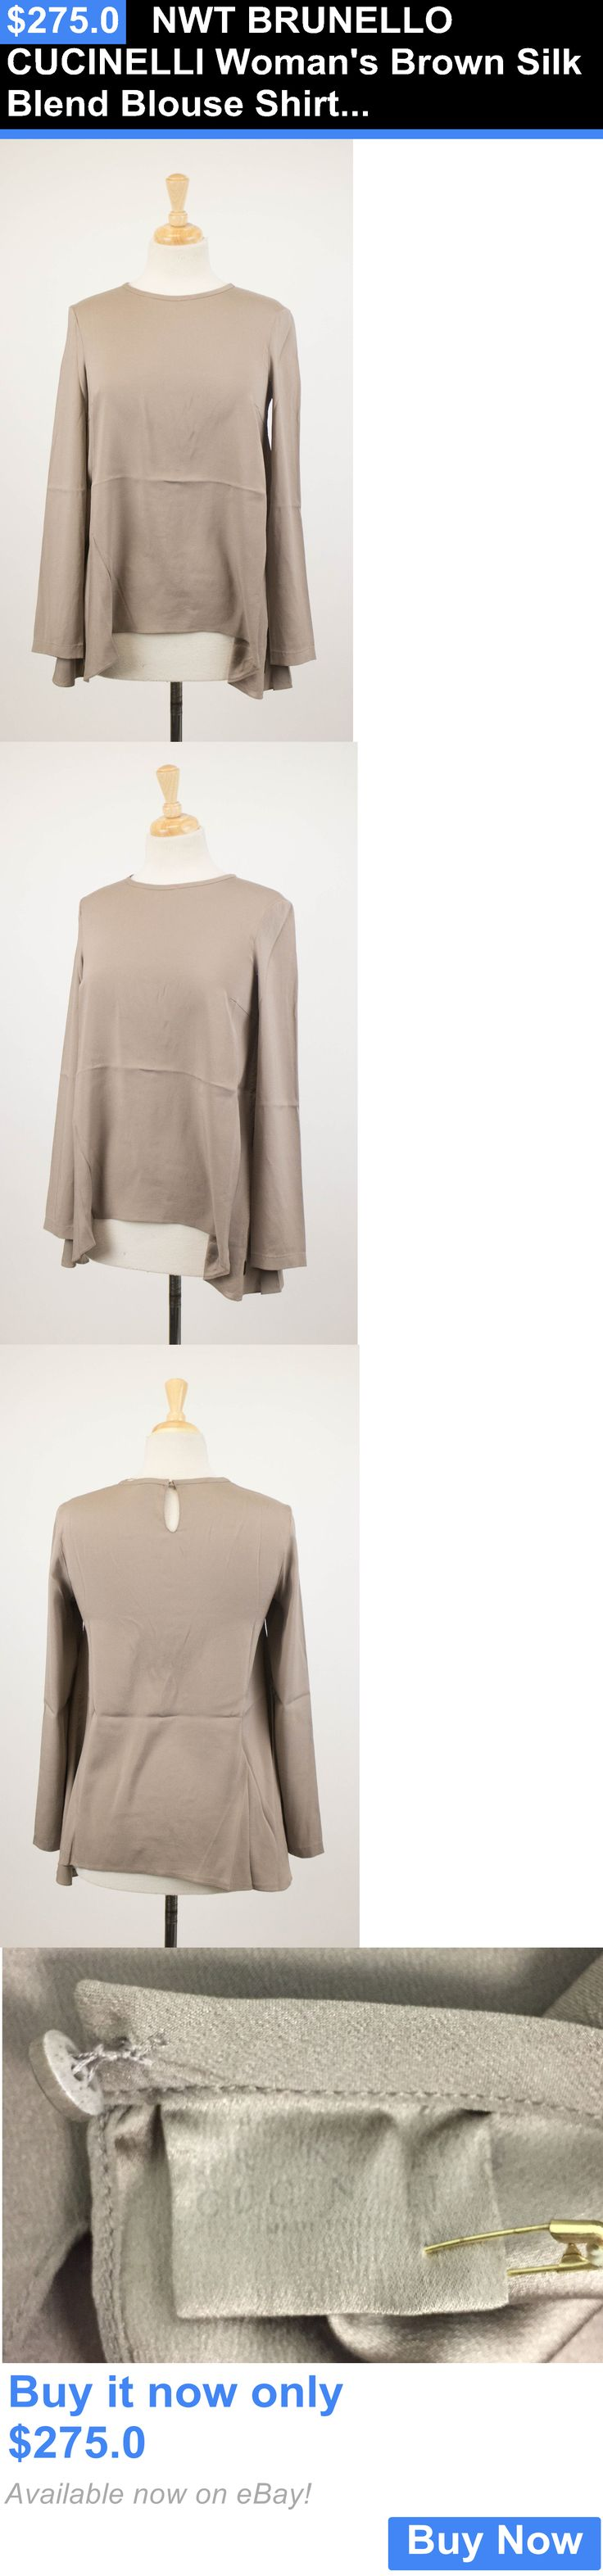 Women Tops And Blouses: Nwt Brunello Cucinelli Womans Brown Silk Blend Blouse Shirt Top Size M $895 BUY IT NOW ONLY: $275.0